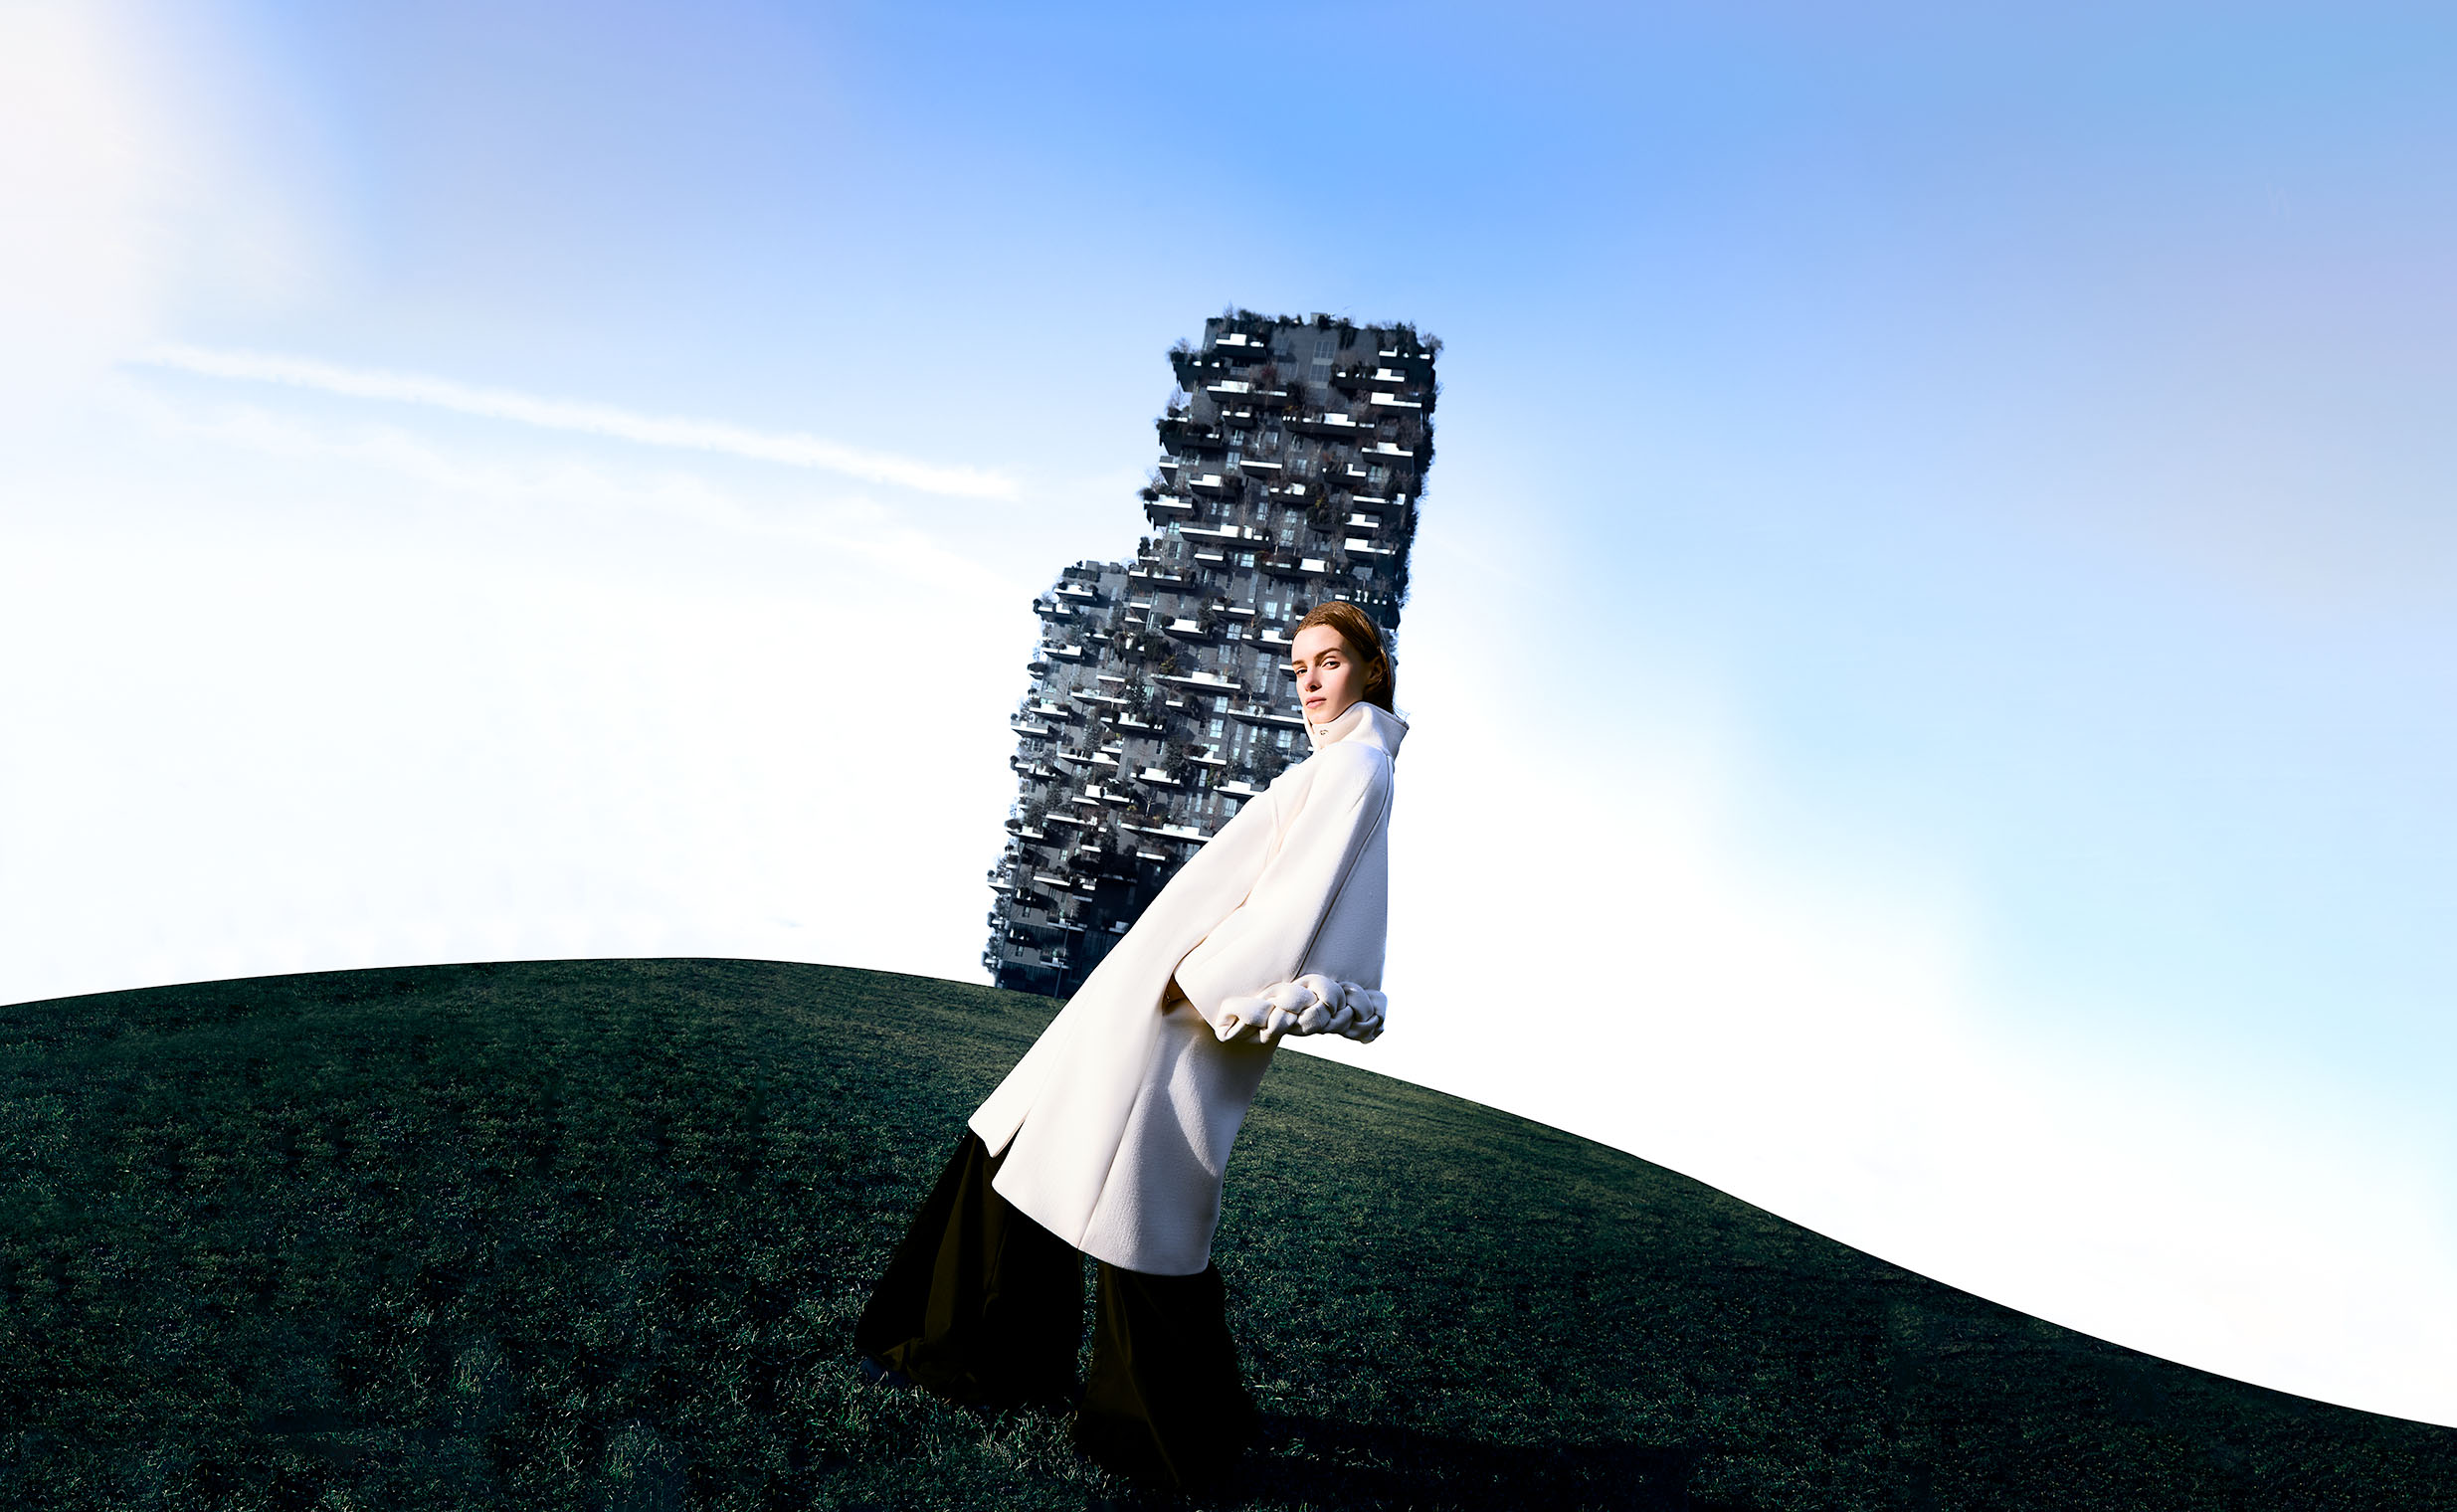 Girl in white coat in front of a high tower in a surreal landscape